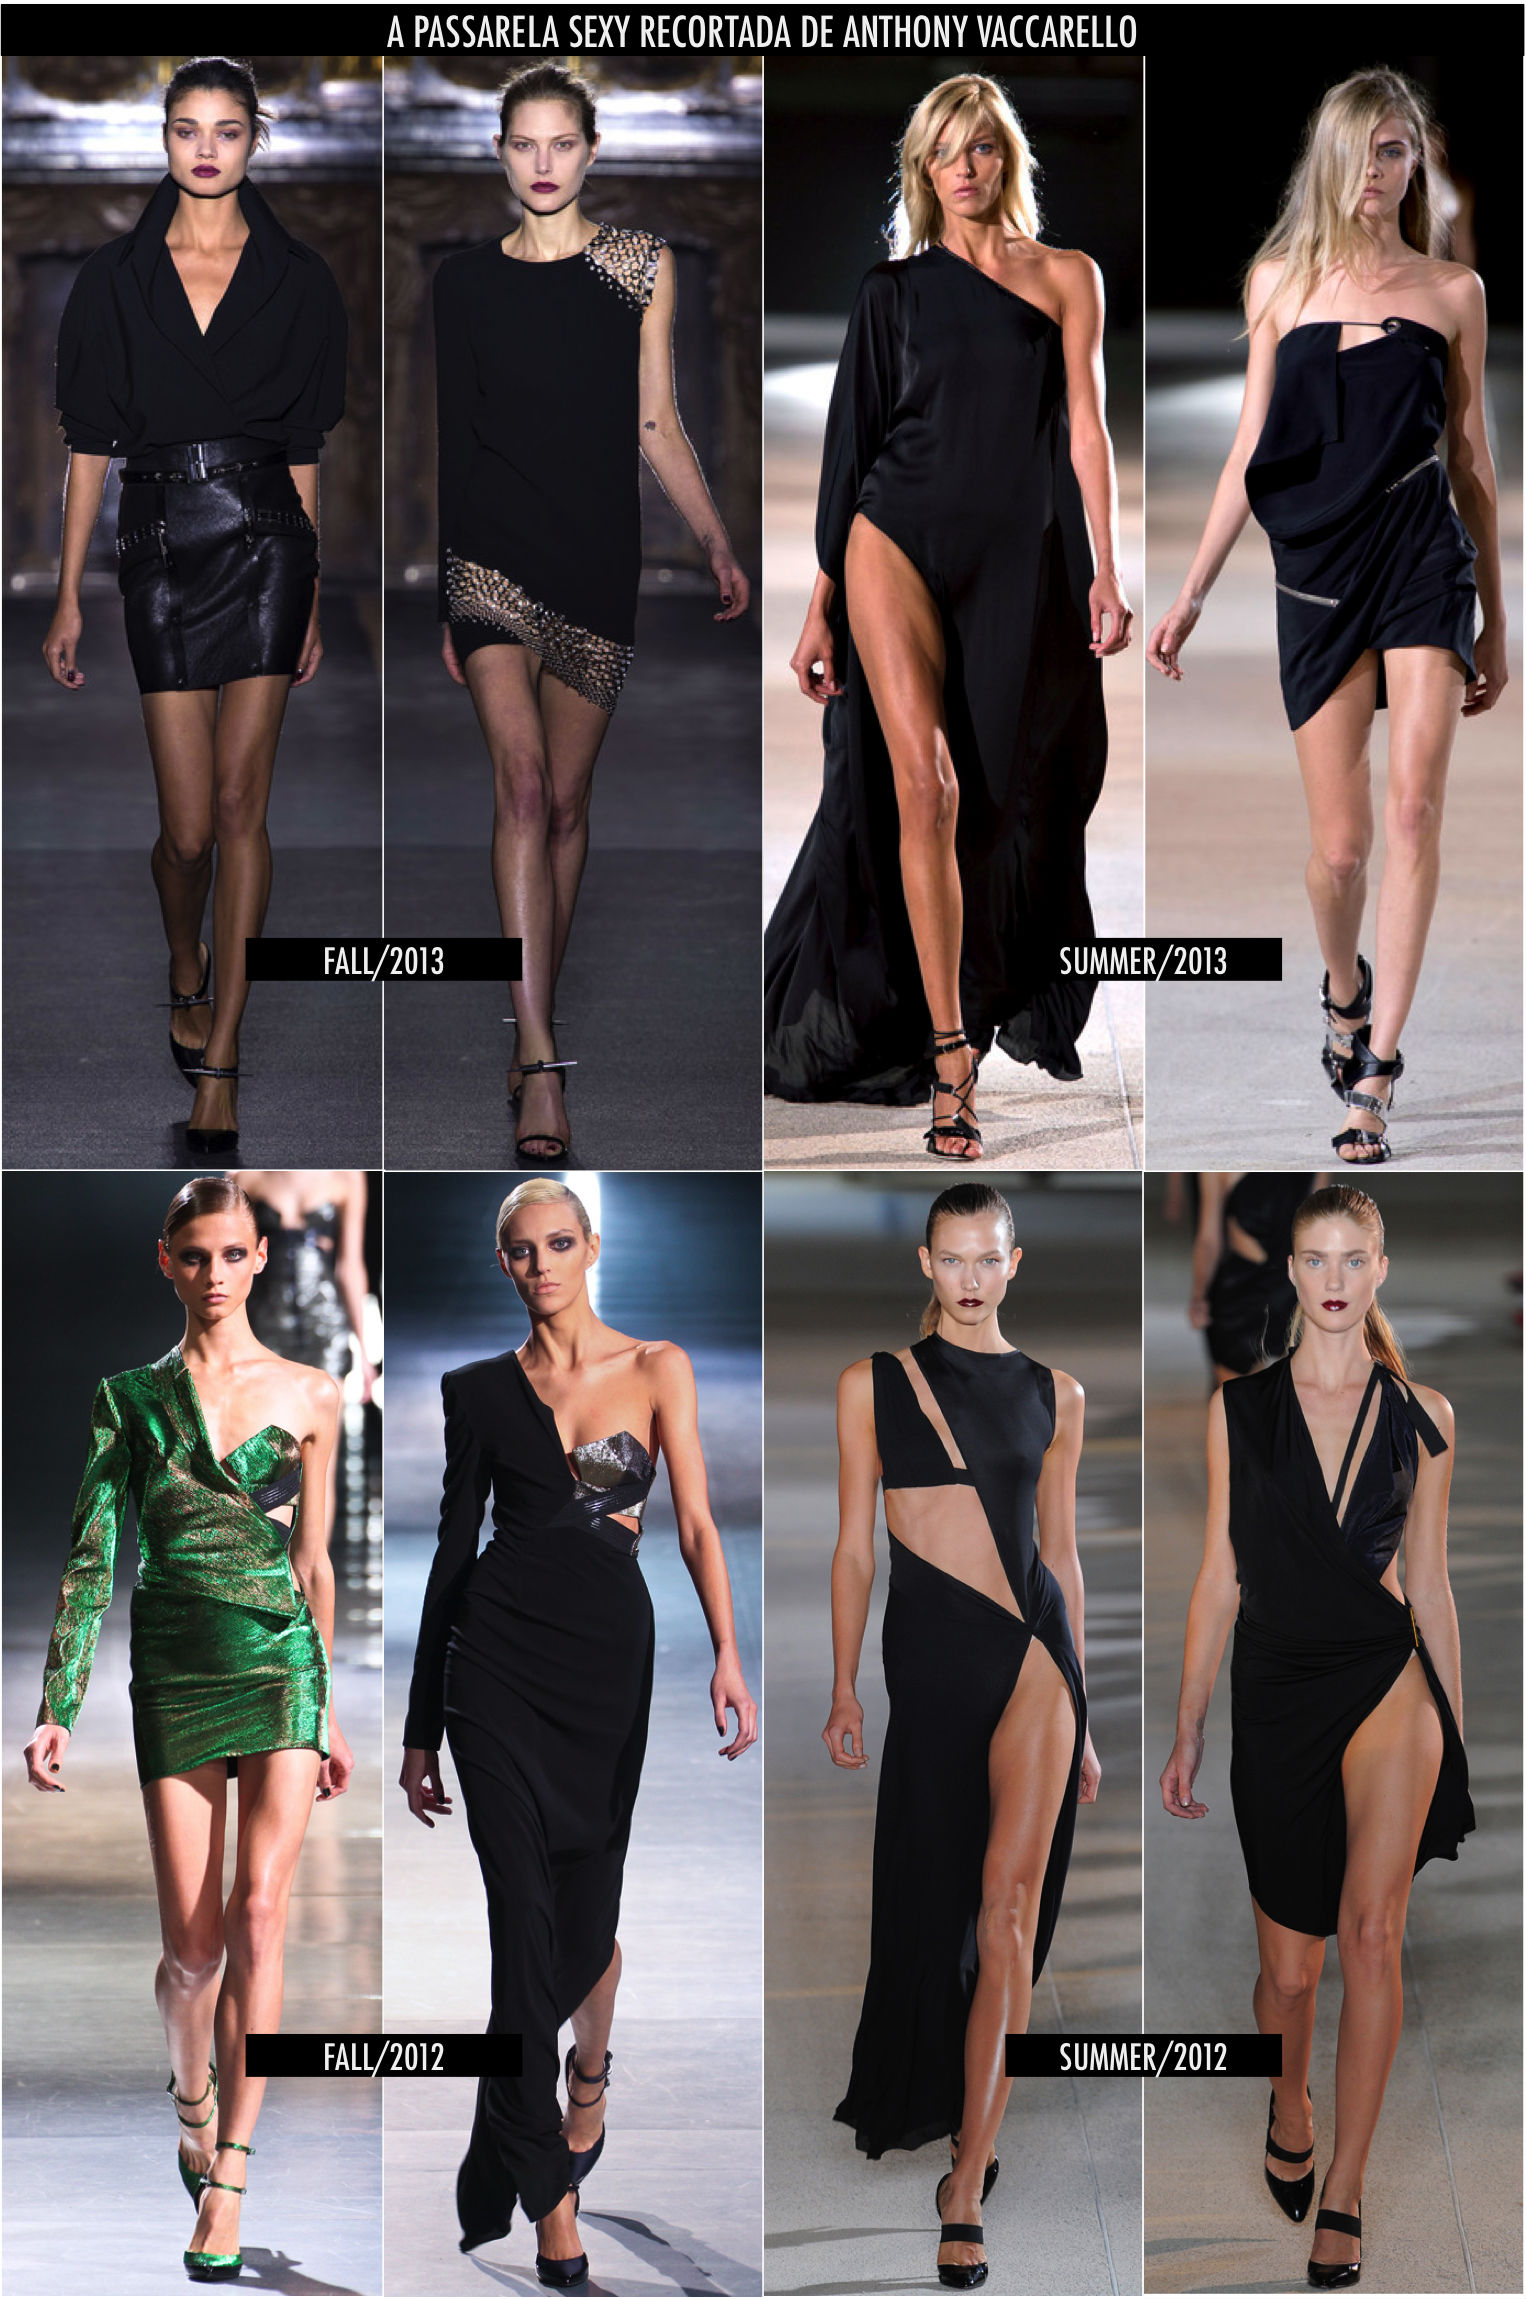 ANTHONY VACCARELLO1